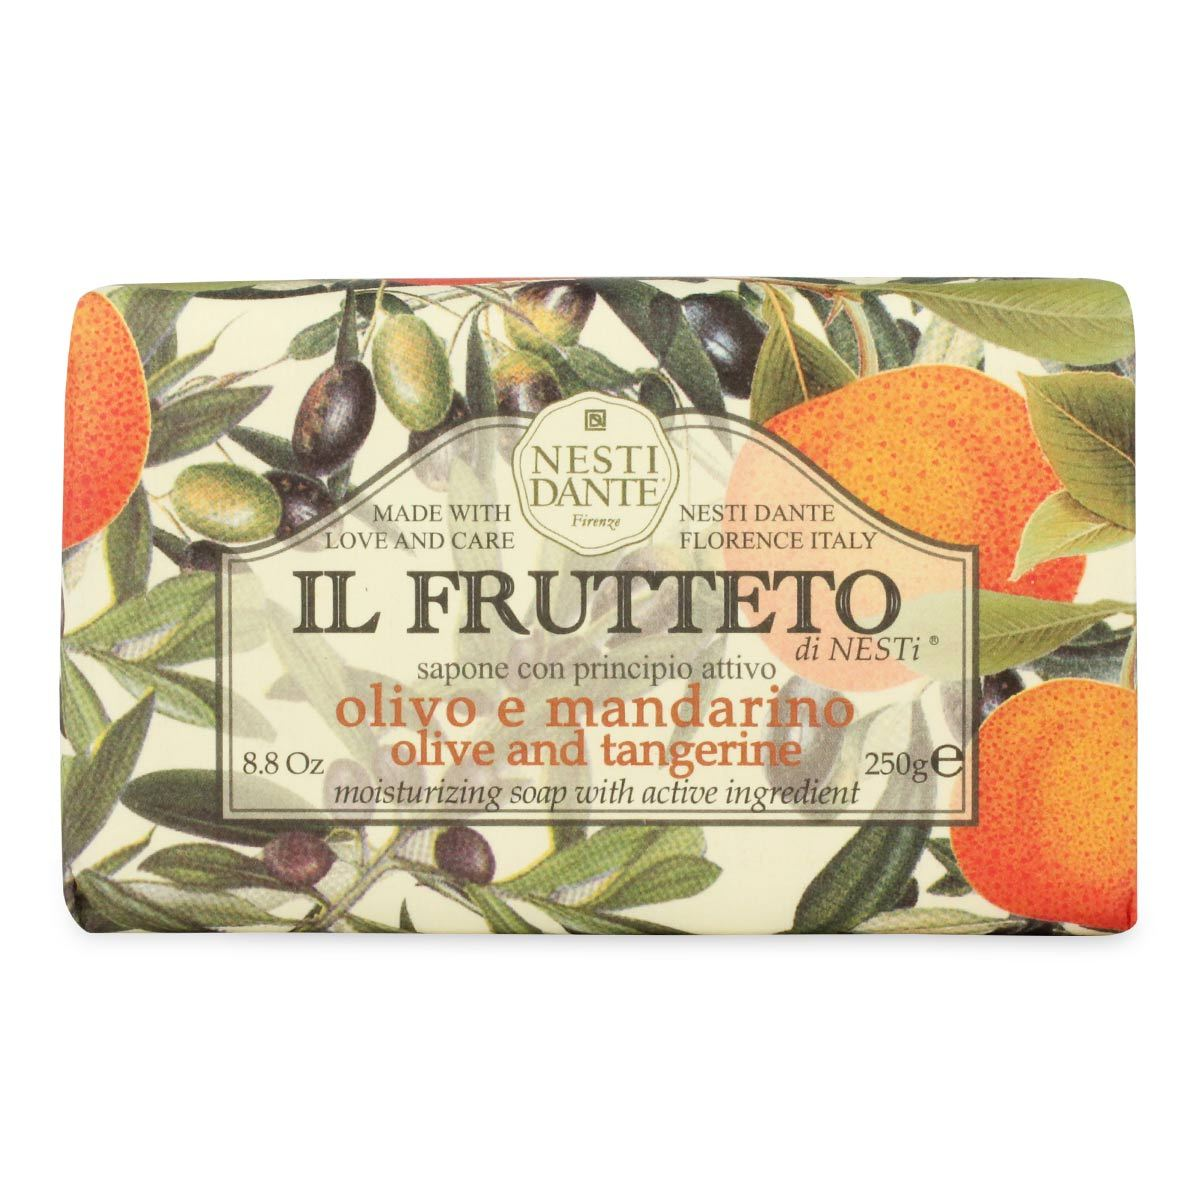 Nesti Dante IL Frutteto The Fruit Garden Olive & Tangerine Soap 8.8oz